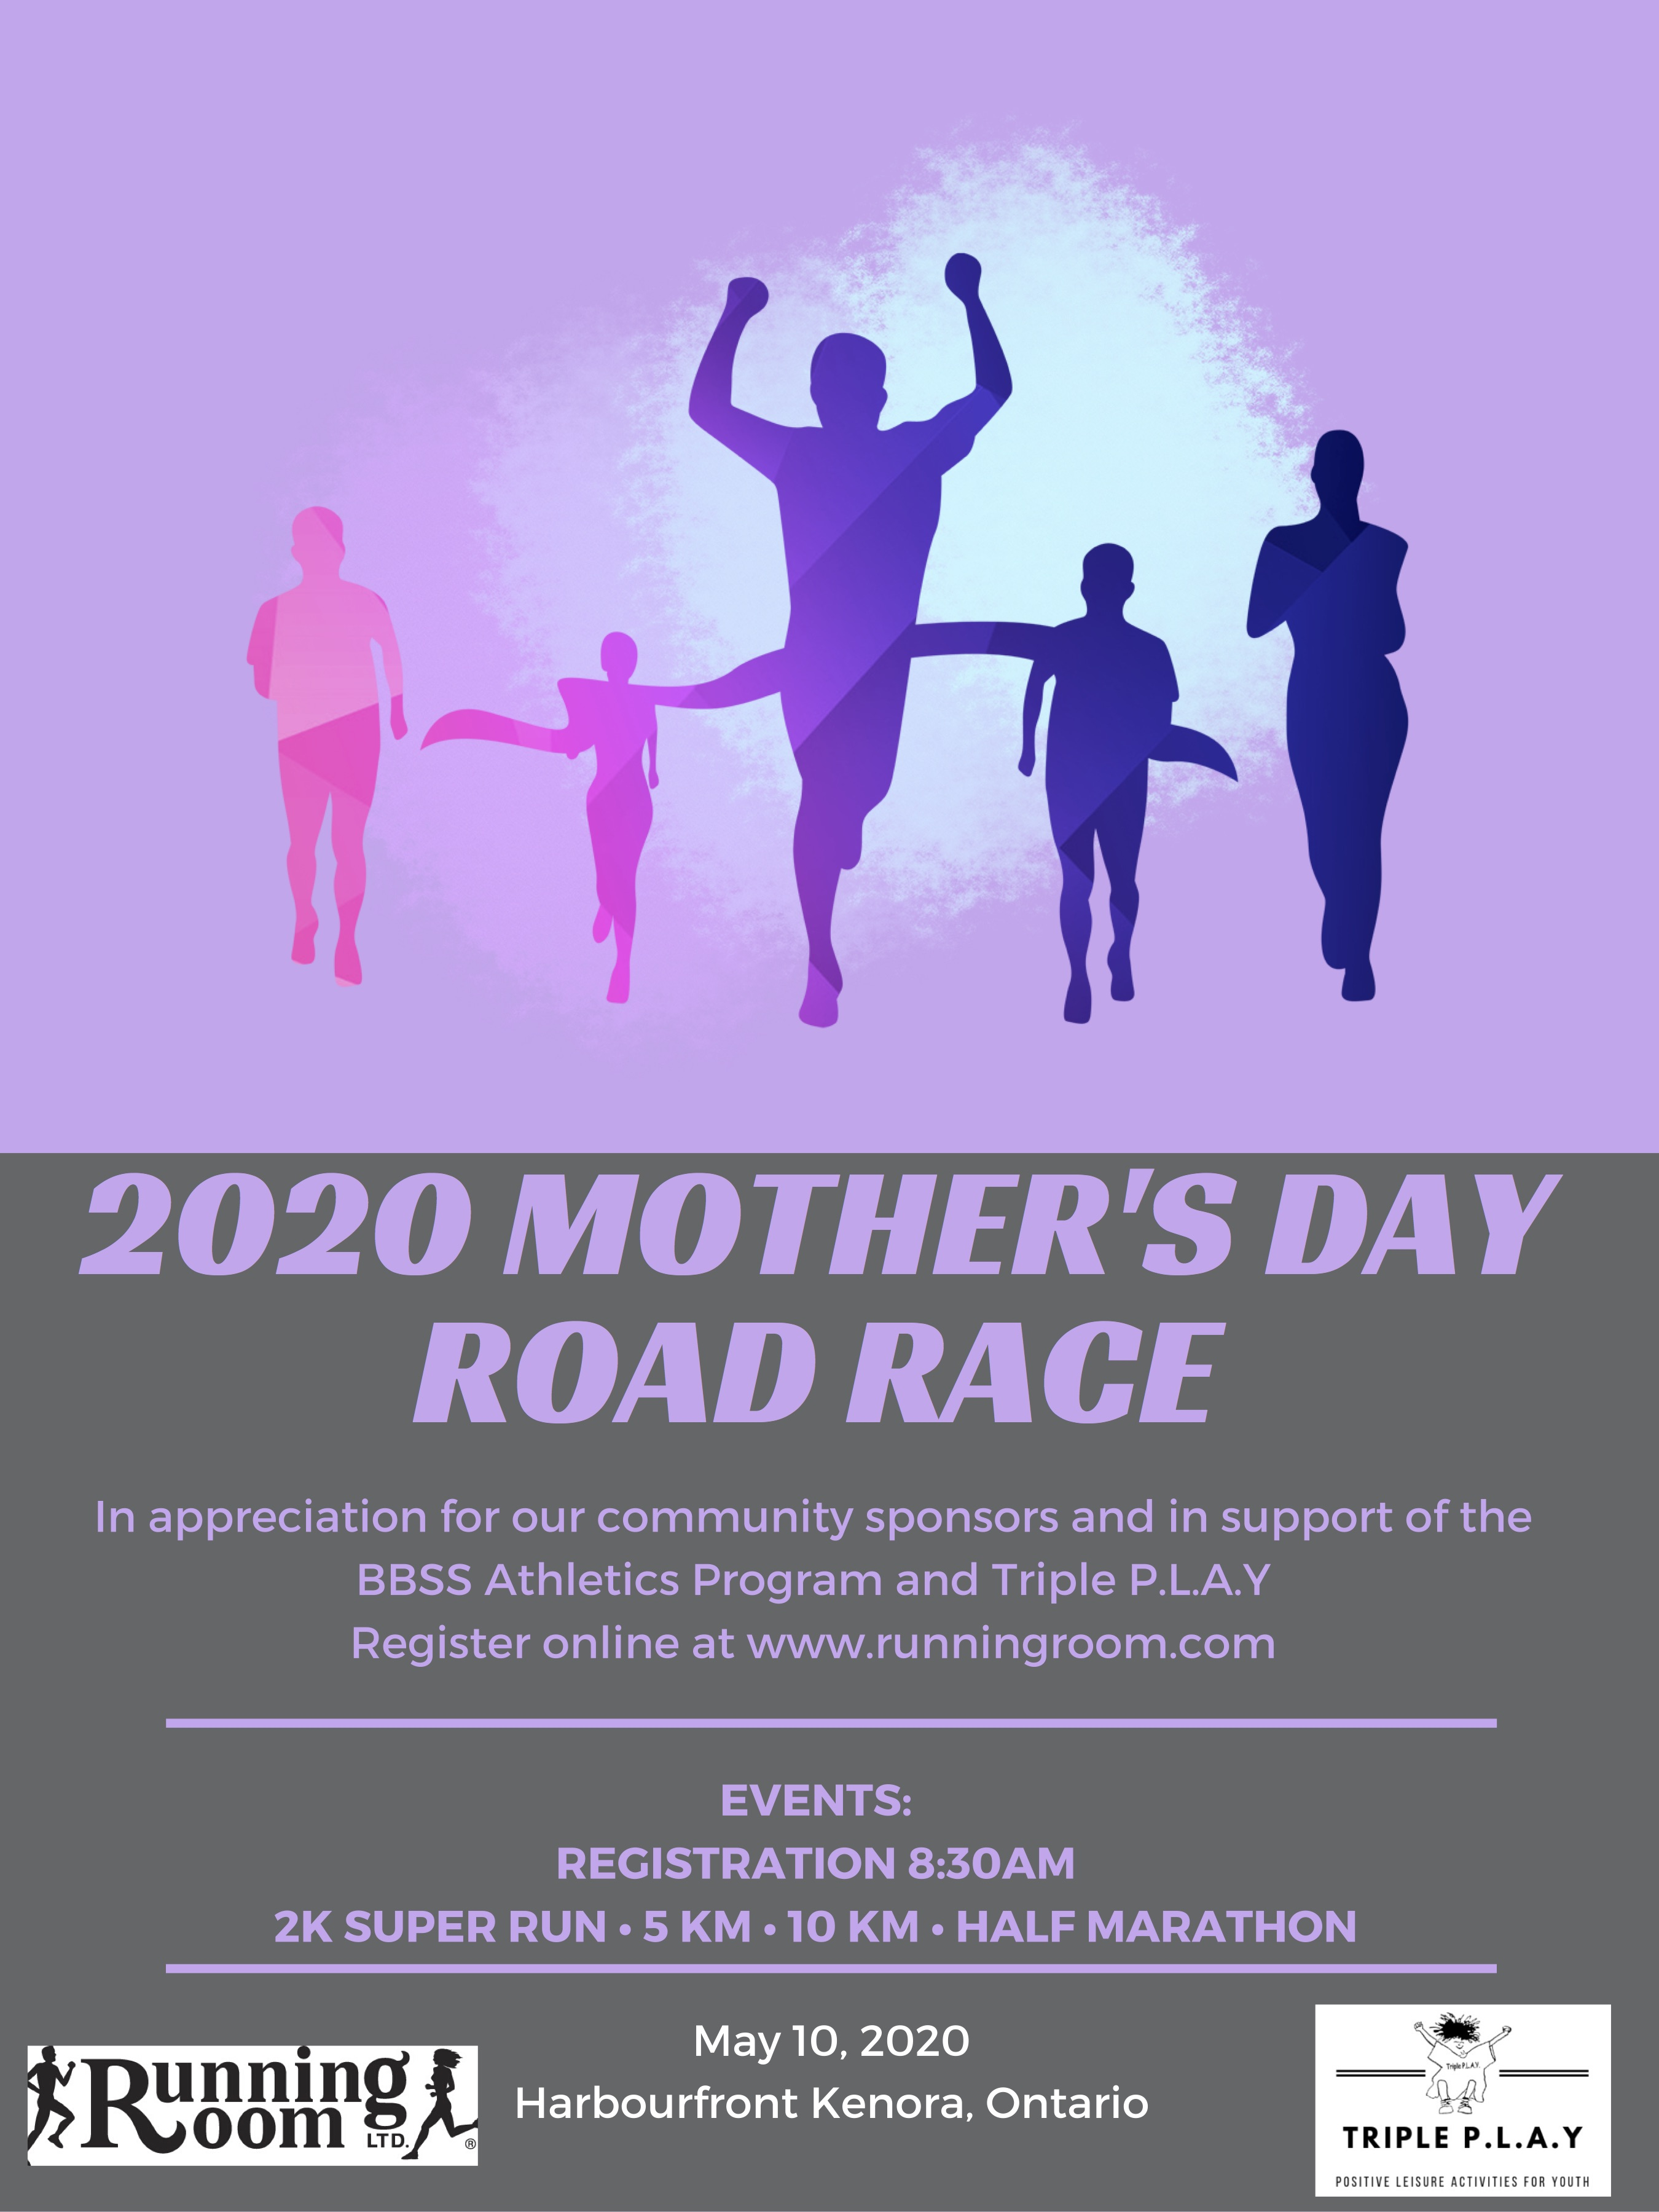 2020 Mother's Day Road Race